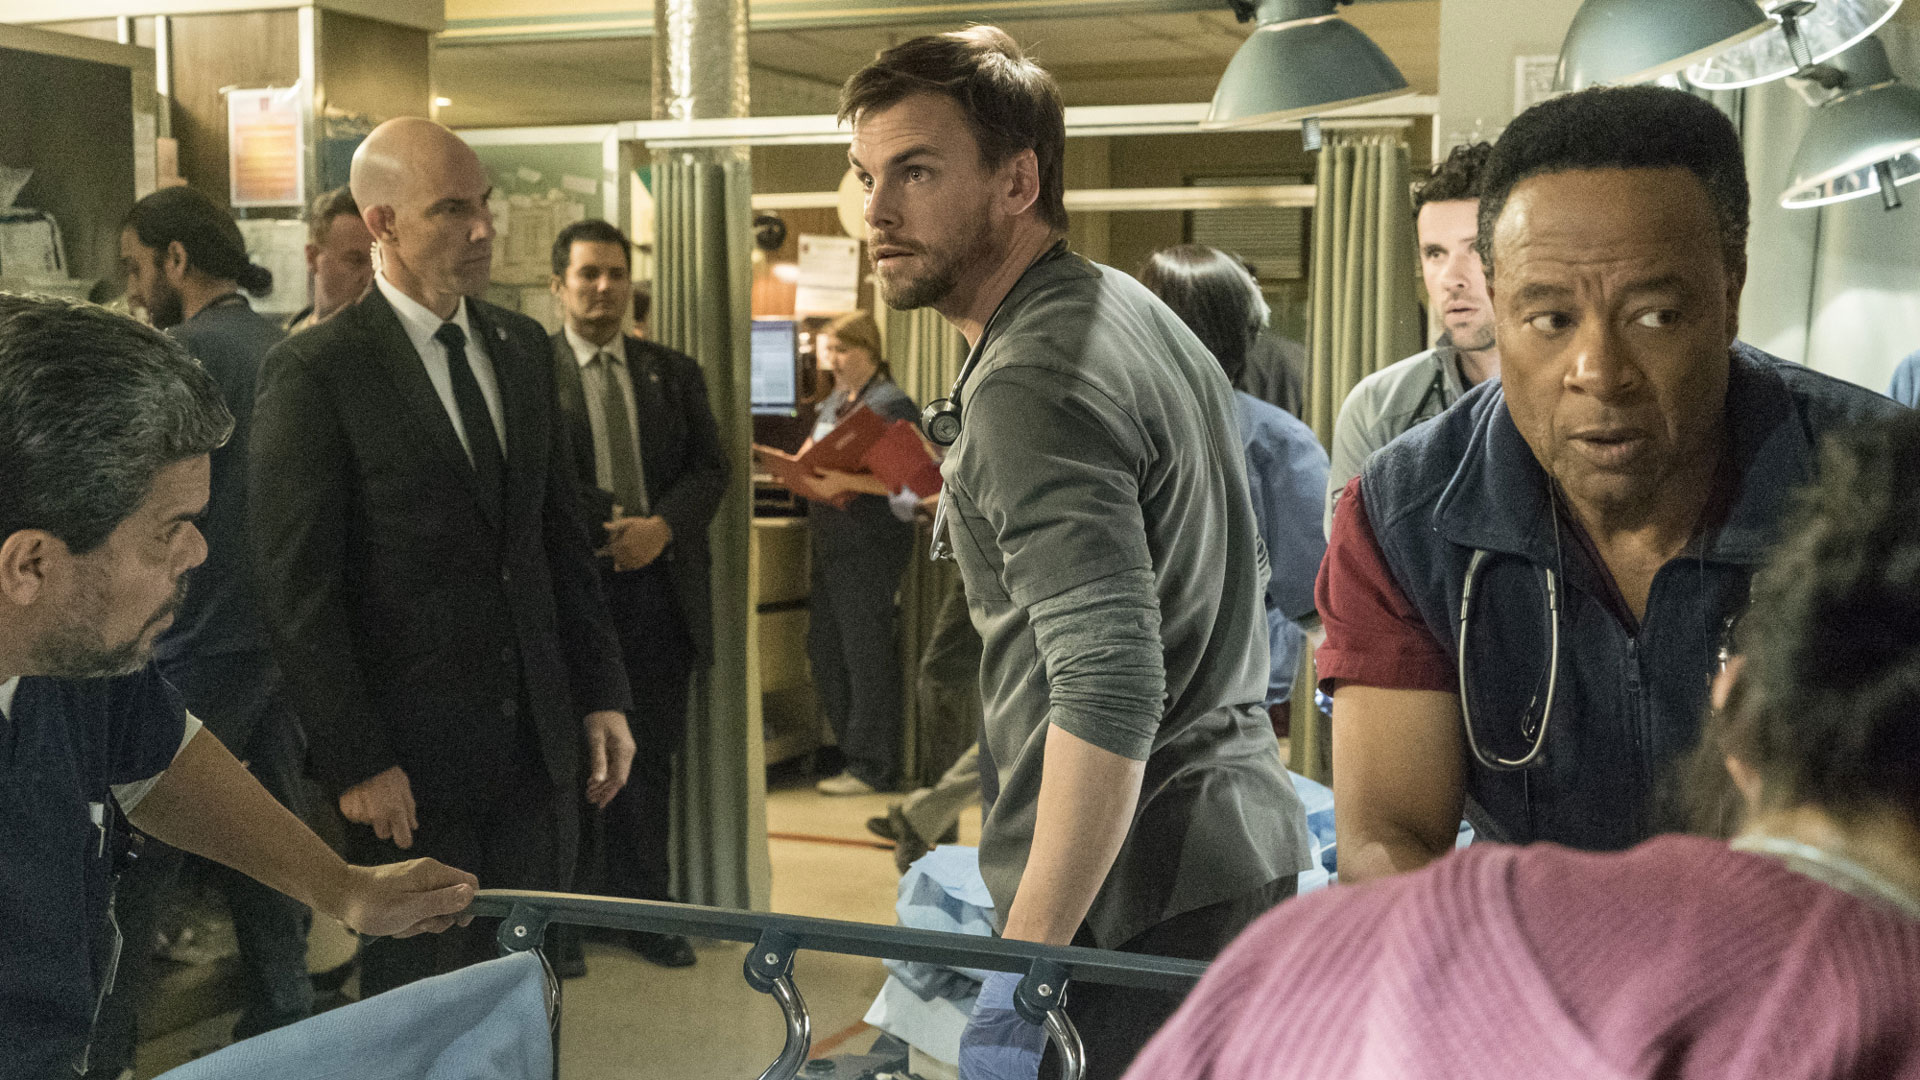 Luis Guzmán as Jesse Sallander, Tommy Dewey as Dr. Mike Leighton, and William Allen Young as Dr. Rollie Guthrie